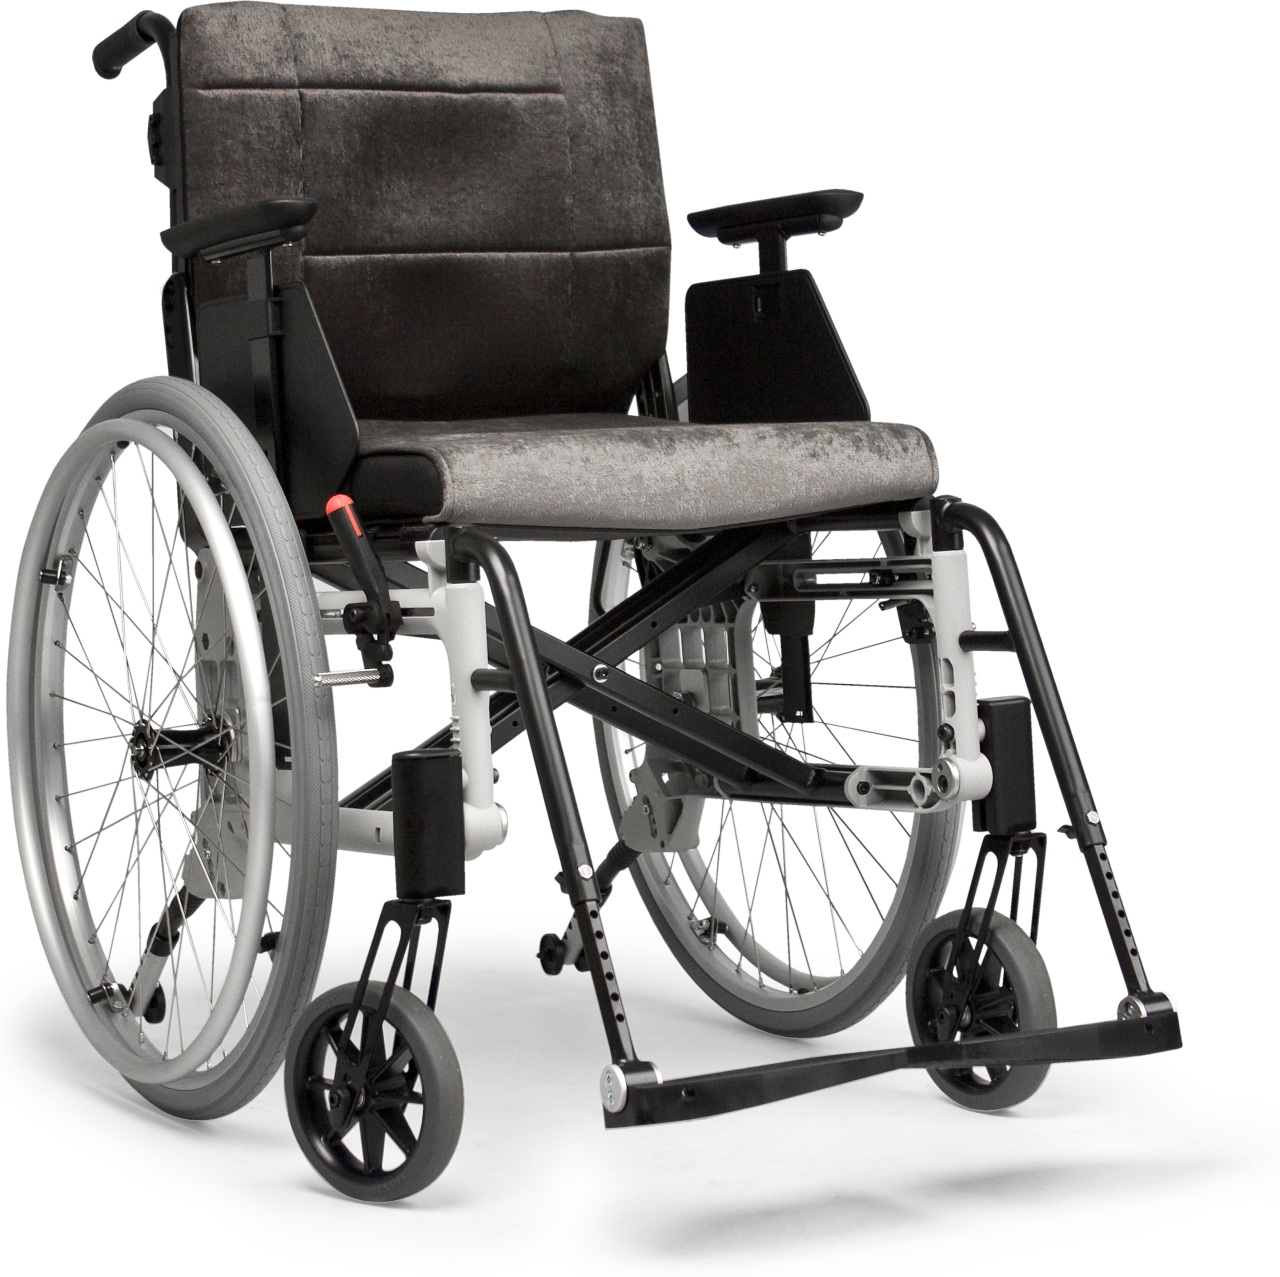 Etac Cross 5 wheelchair - every little detail makes a big difference